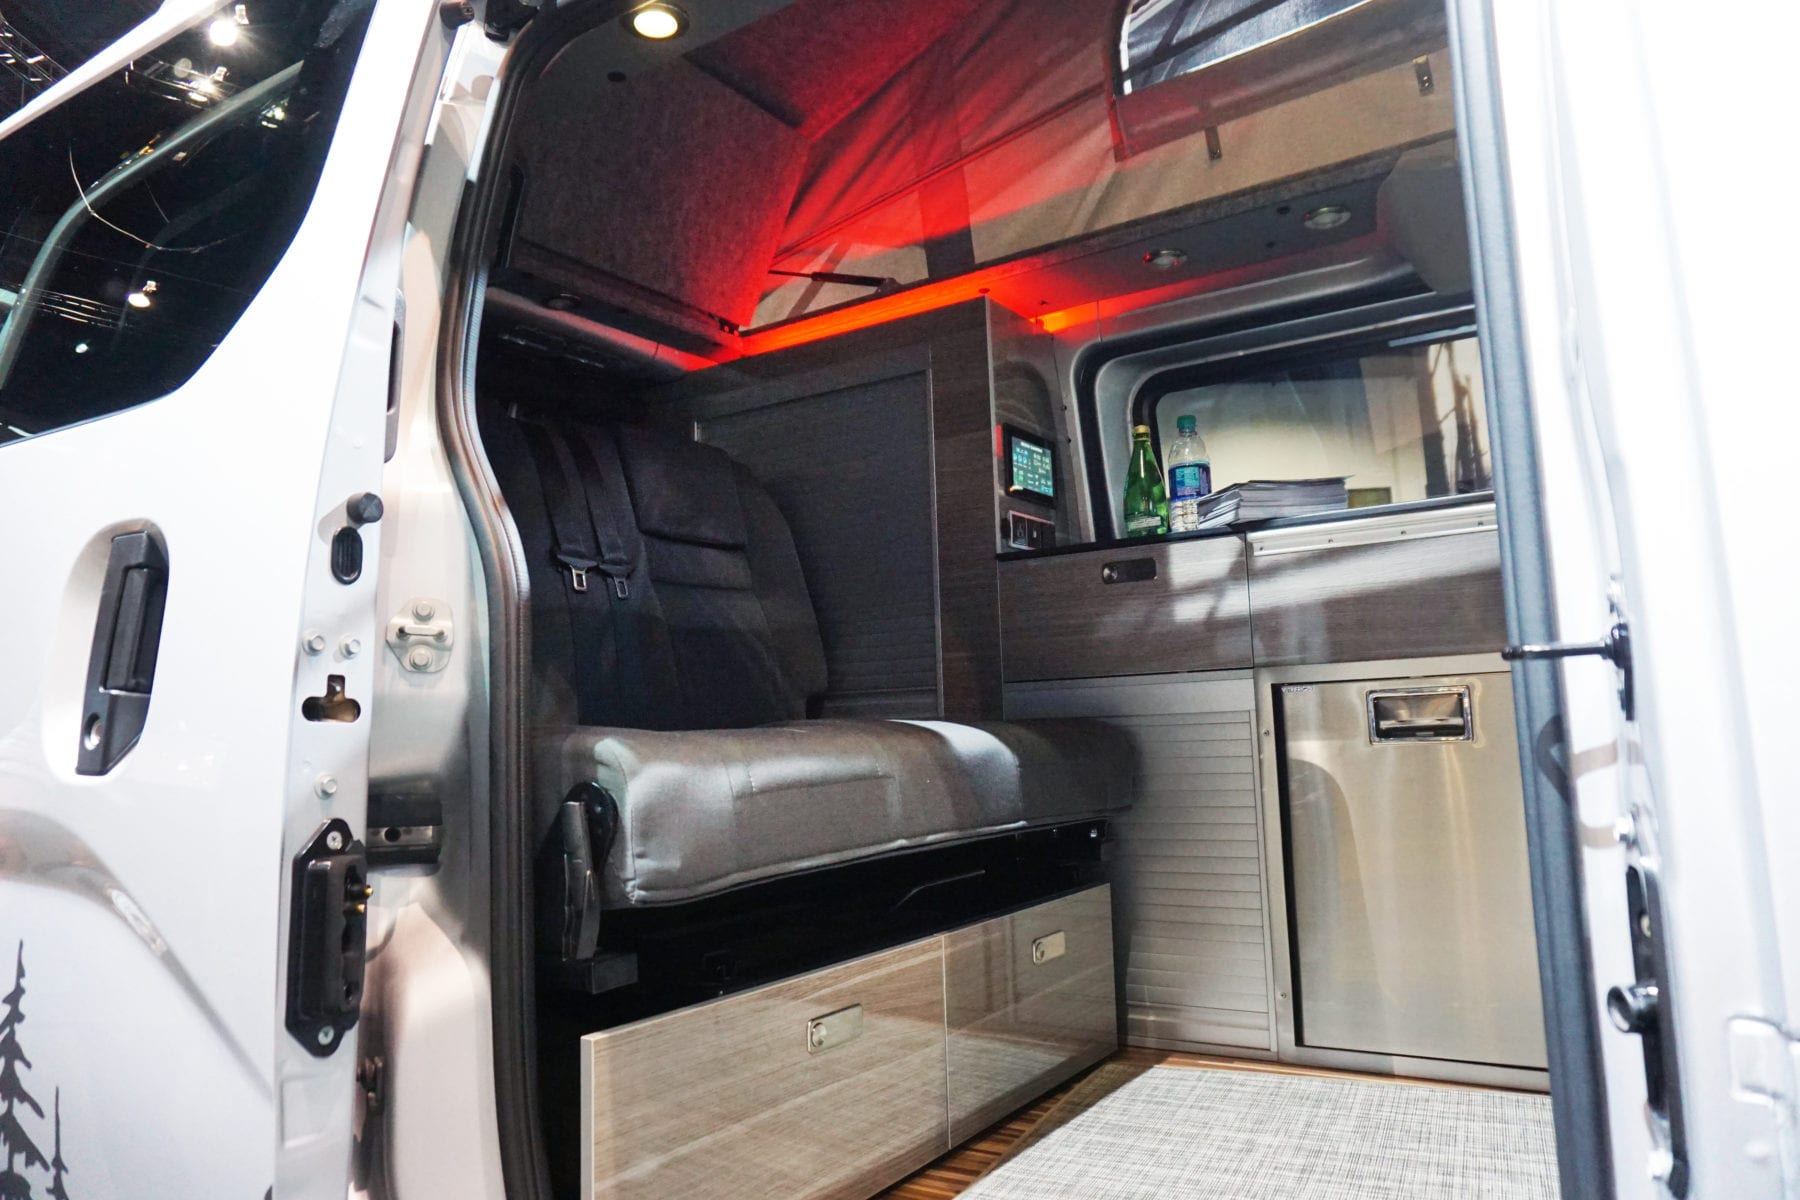 interior of the Recon Campers Envy